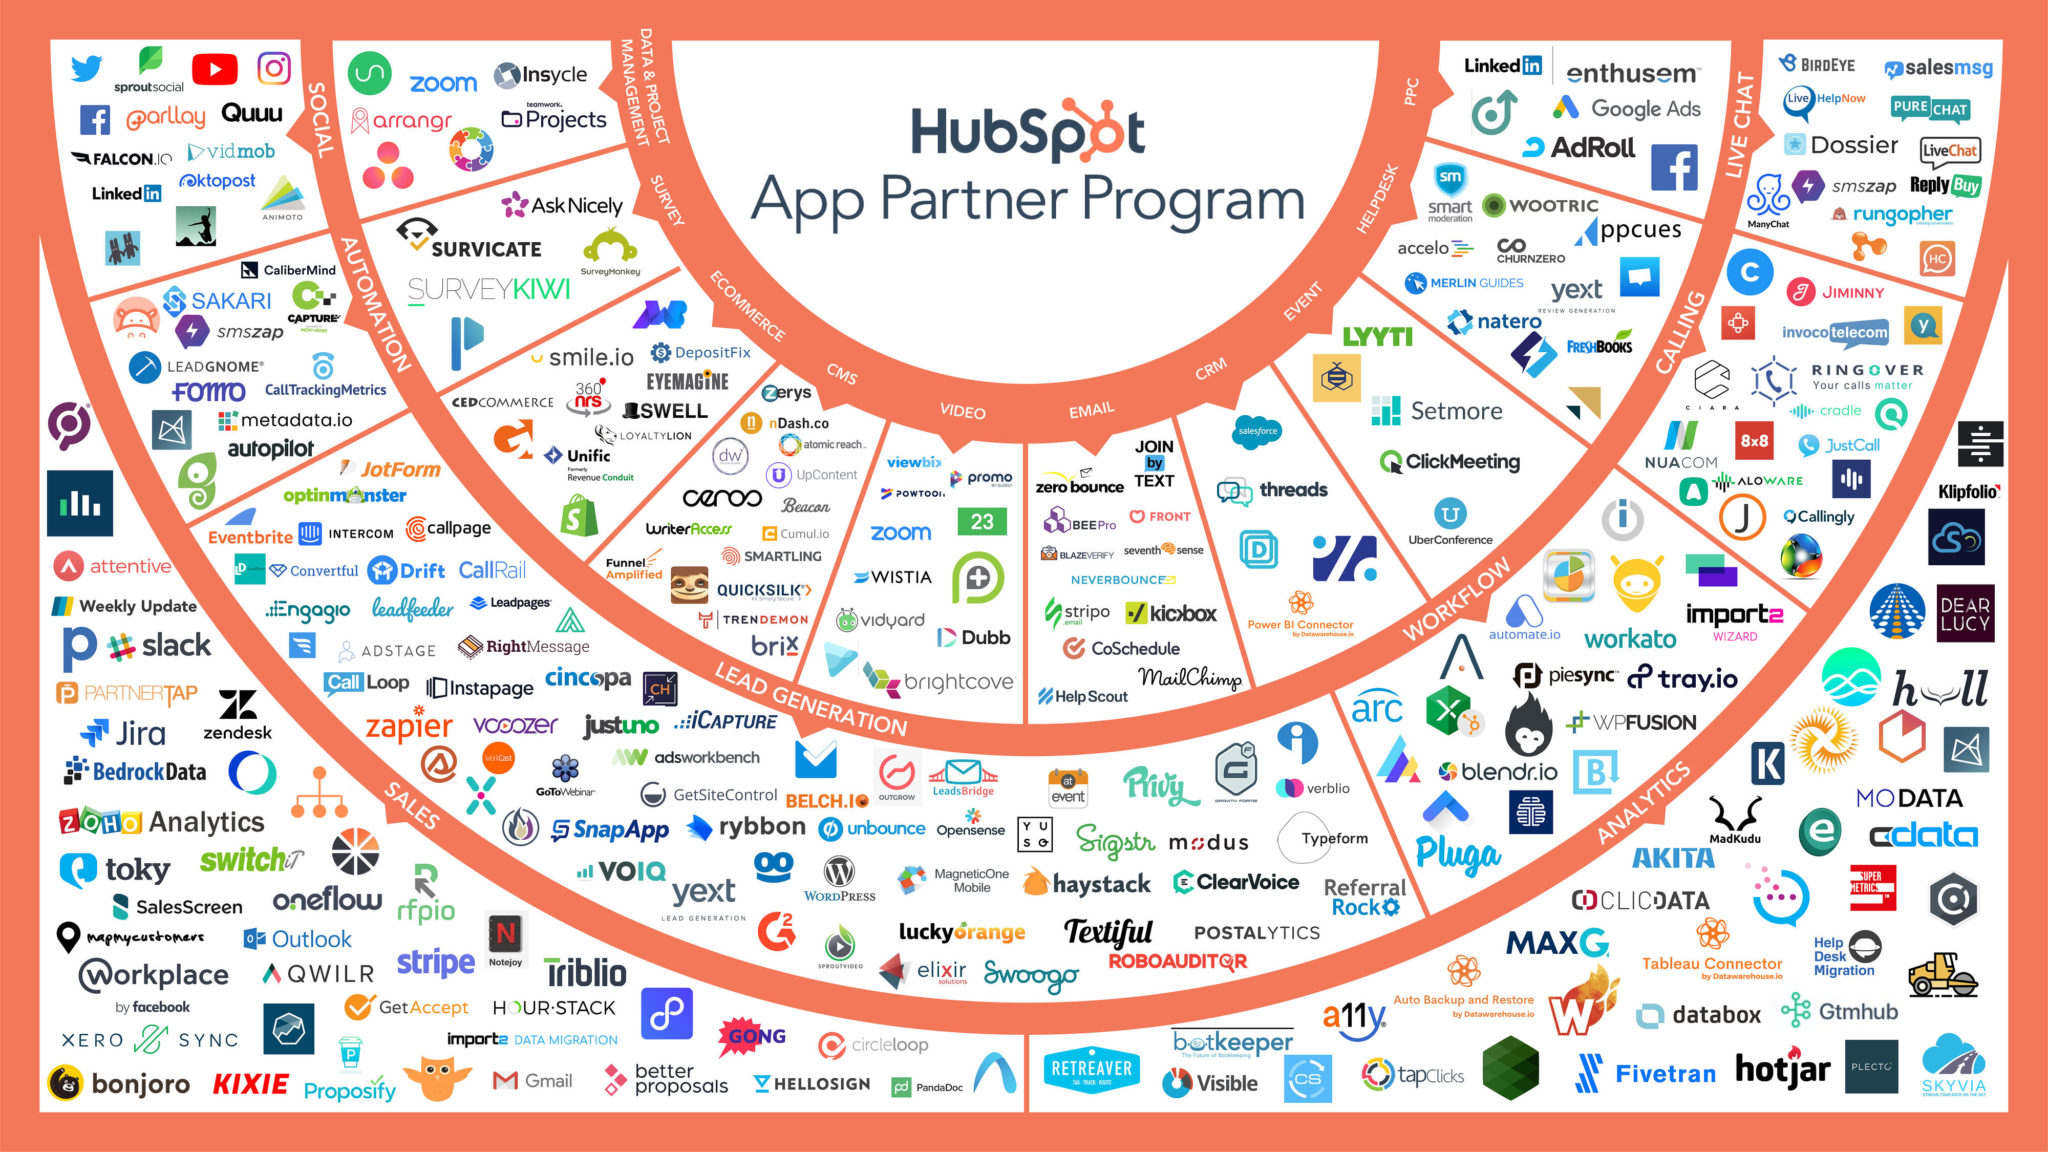 Hubspot Connection